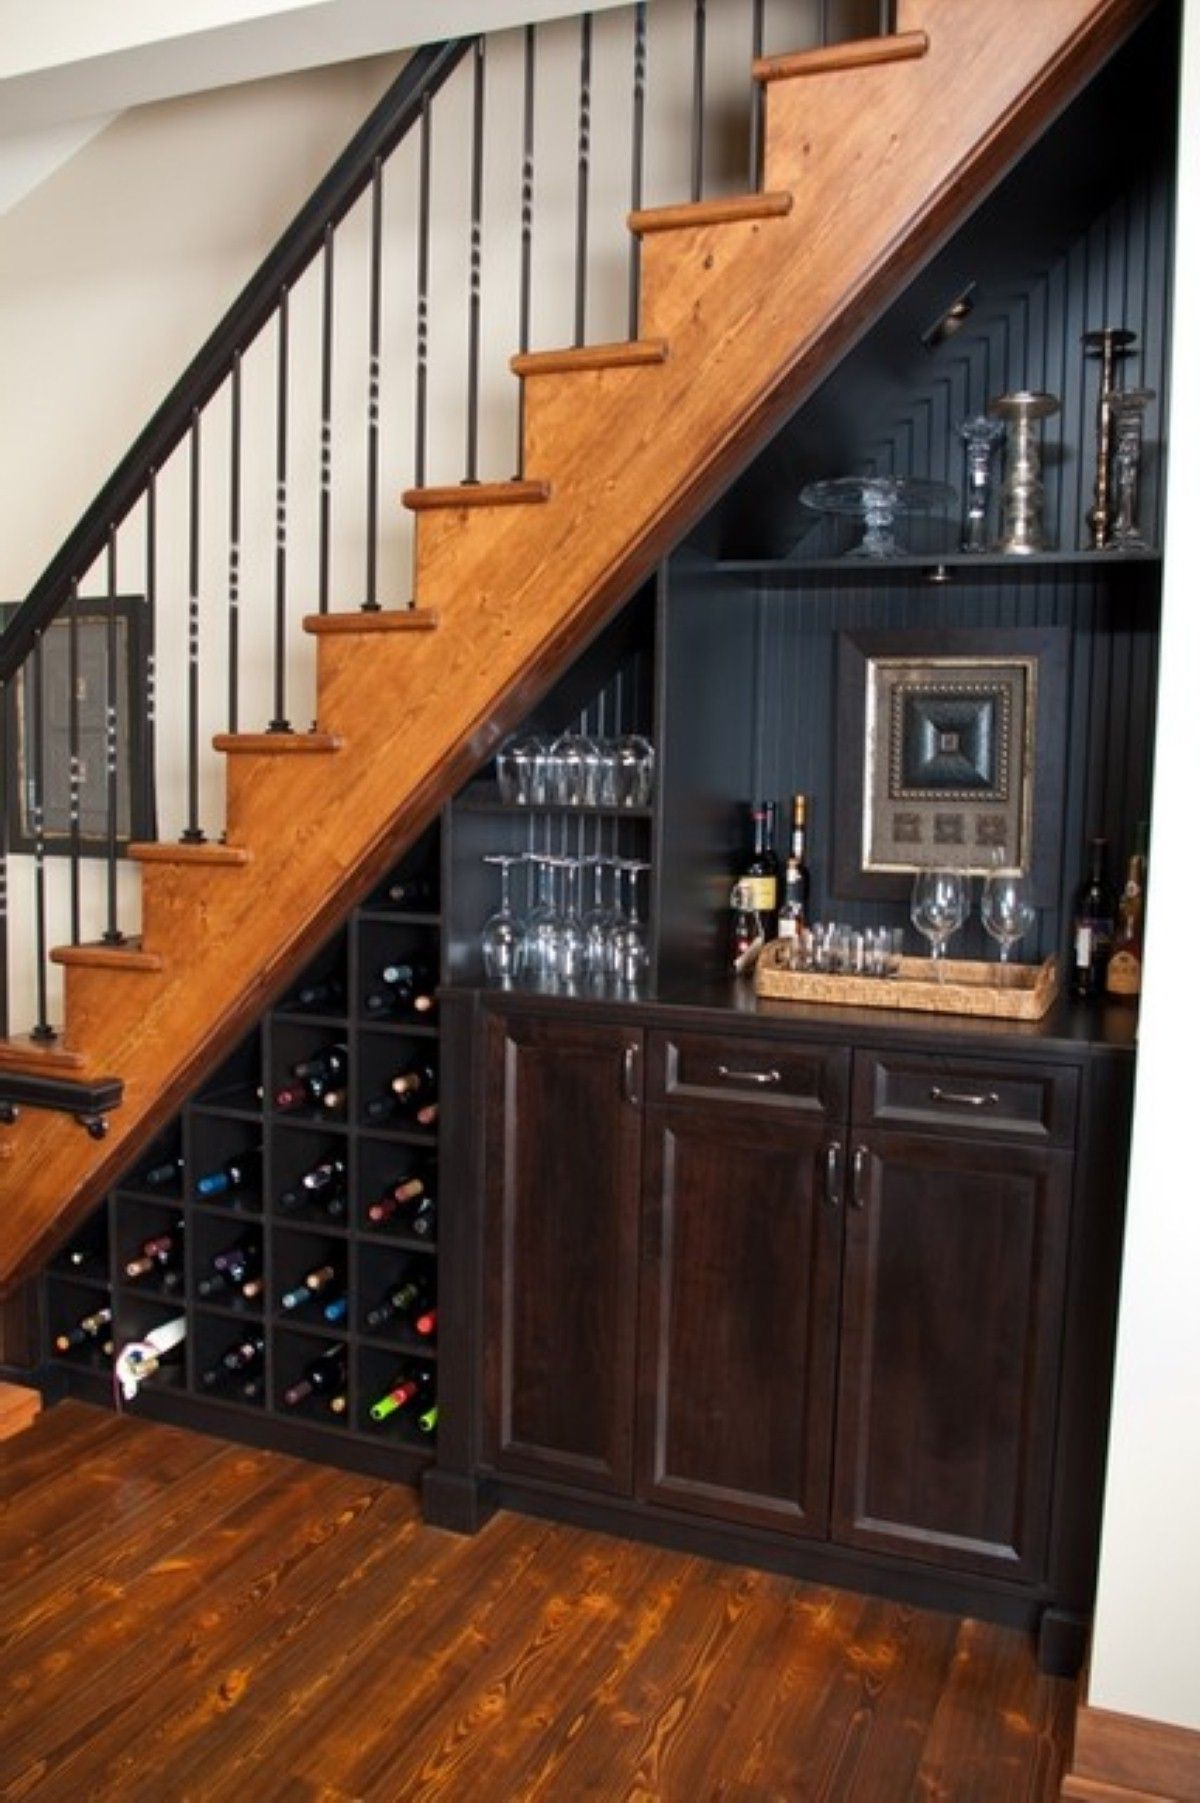 Maximizing limited space in awesome way with mini bar under stairs